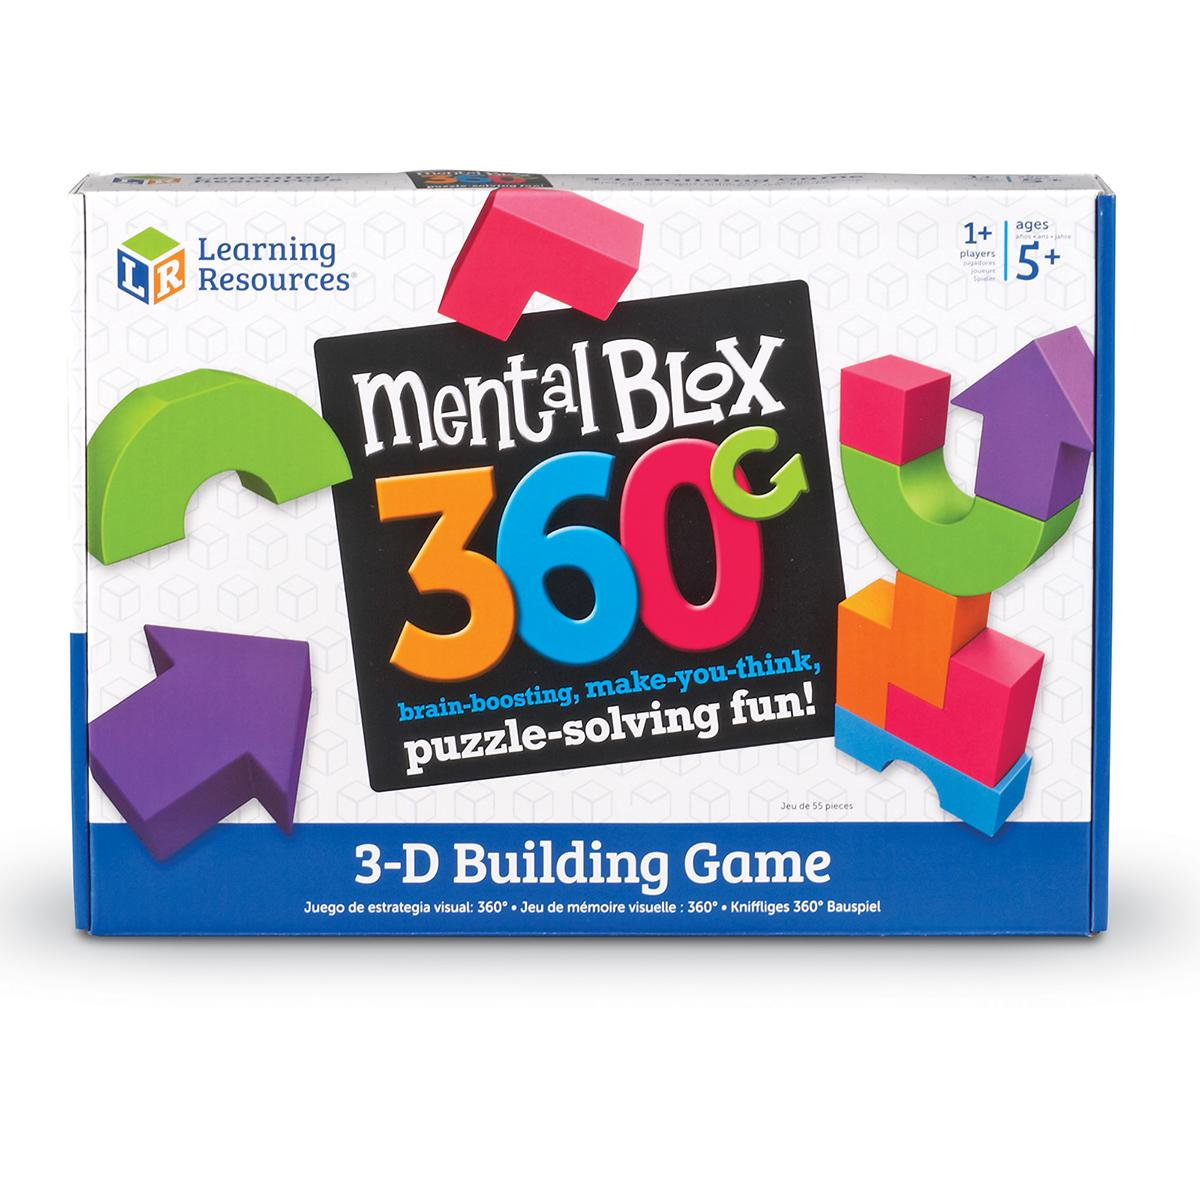 Mental Blox 360 3-D Building Game